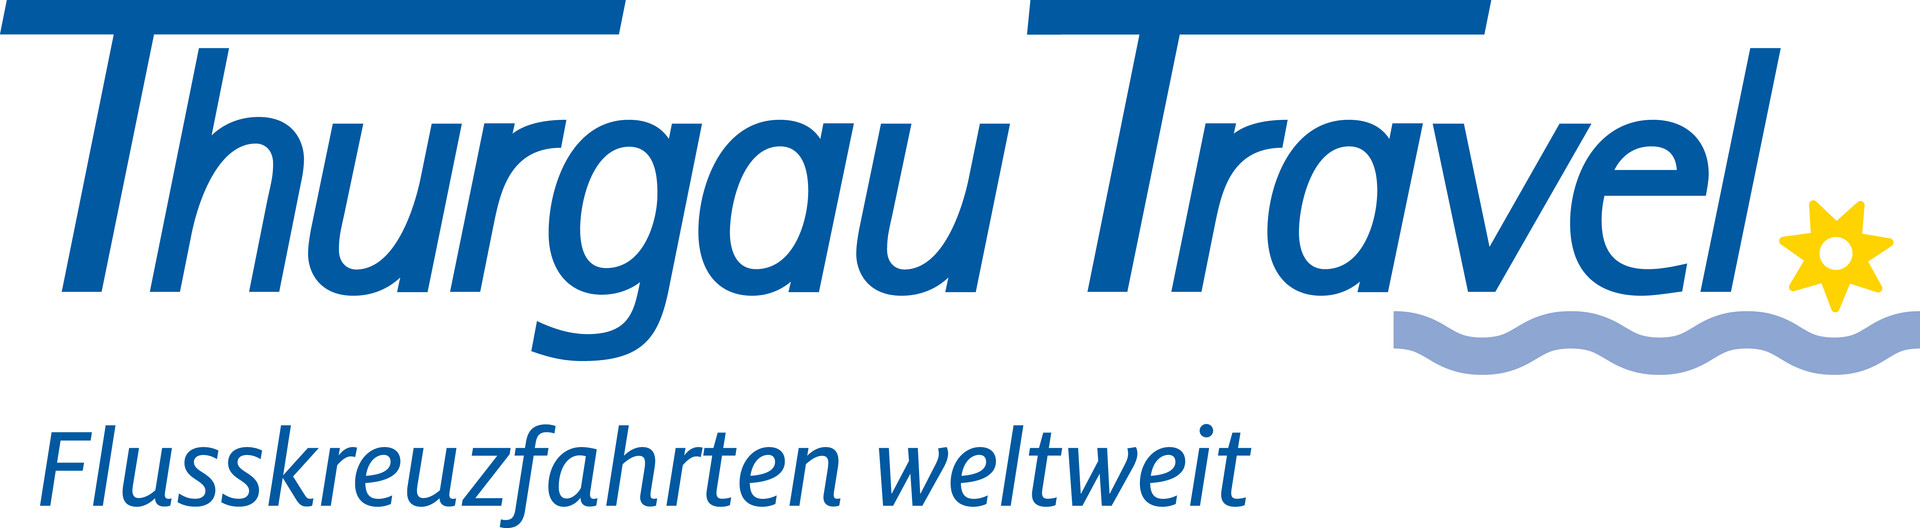 Logo_Thurgau Travel.jpg